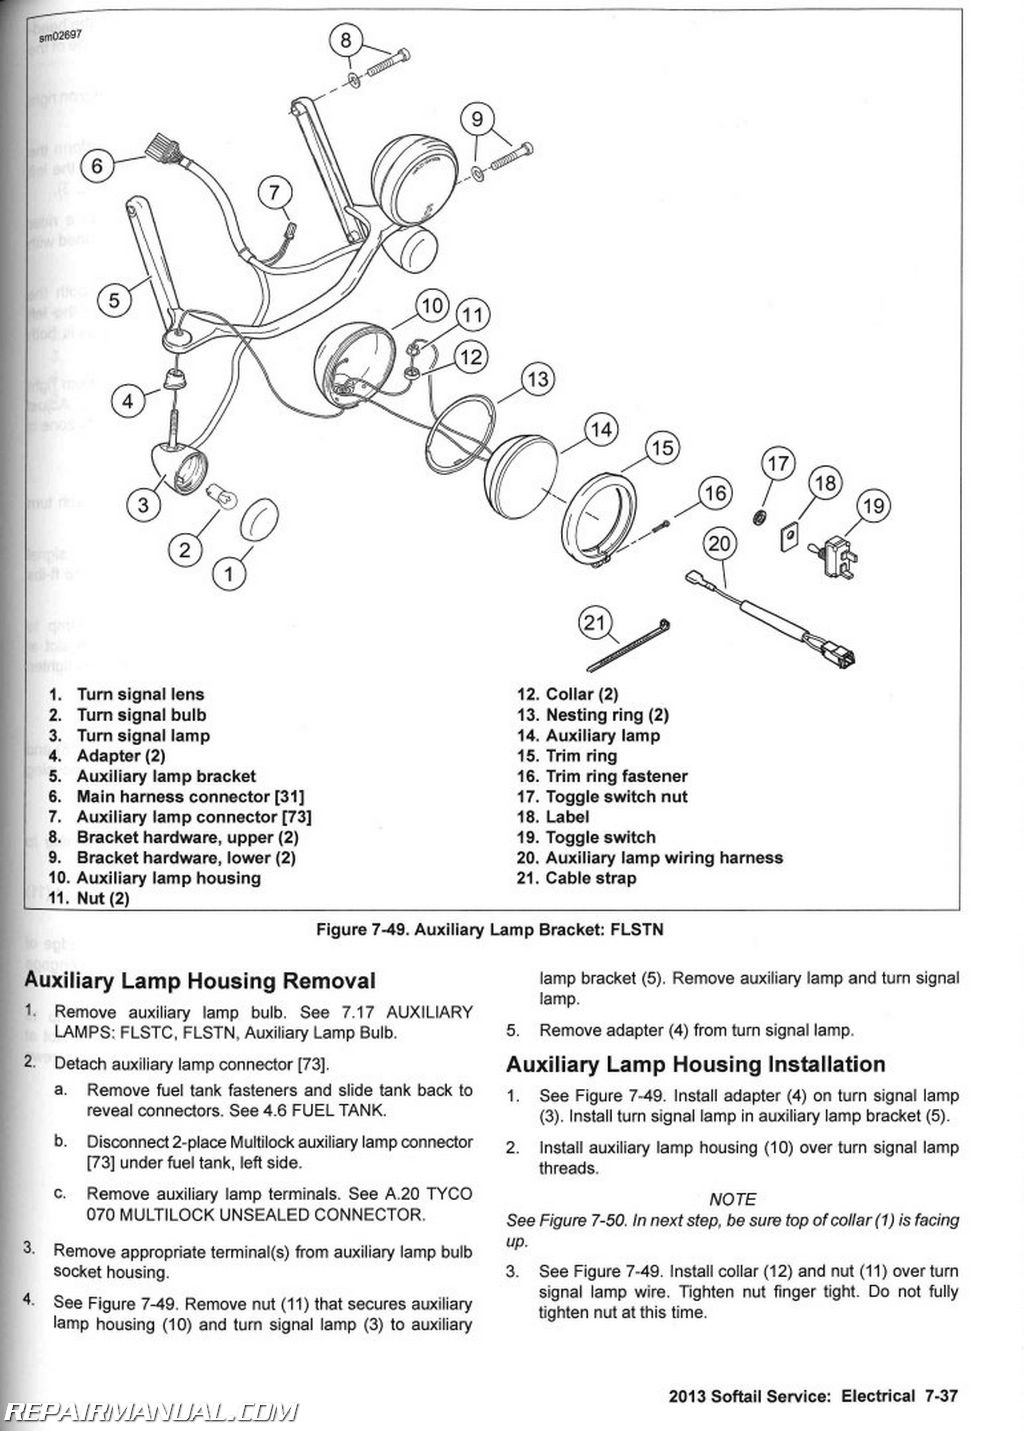 Vw Wiring Diagrams Free S Of Vw T Ignition Switch Wiring Diagram also D Street Glide Aux Lighting Help Img furthermore Pretty Wire Ignition Switch Diagram S Electrical Circuit Of Wire Ignition Switch Wiring Diagram moreover D Is There A Tool For Removing Wires From Plugs Remove Plug Wires in addition Motorcycle Handlebar Ignition Turn Signal Switch Wiring Harness Fit For Harley Davidson Softail Dyna Sportster V Rod. on sportster turn signal wiring